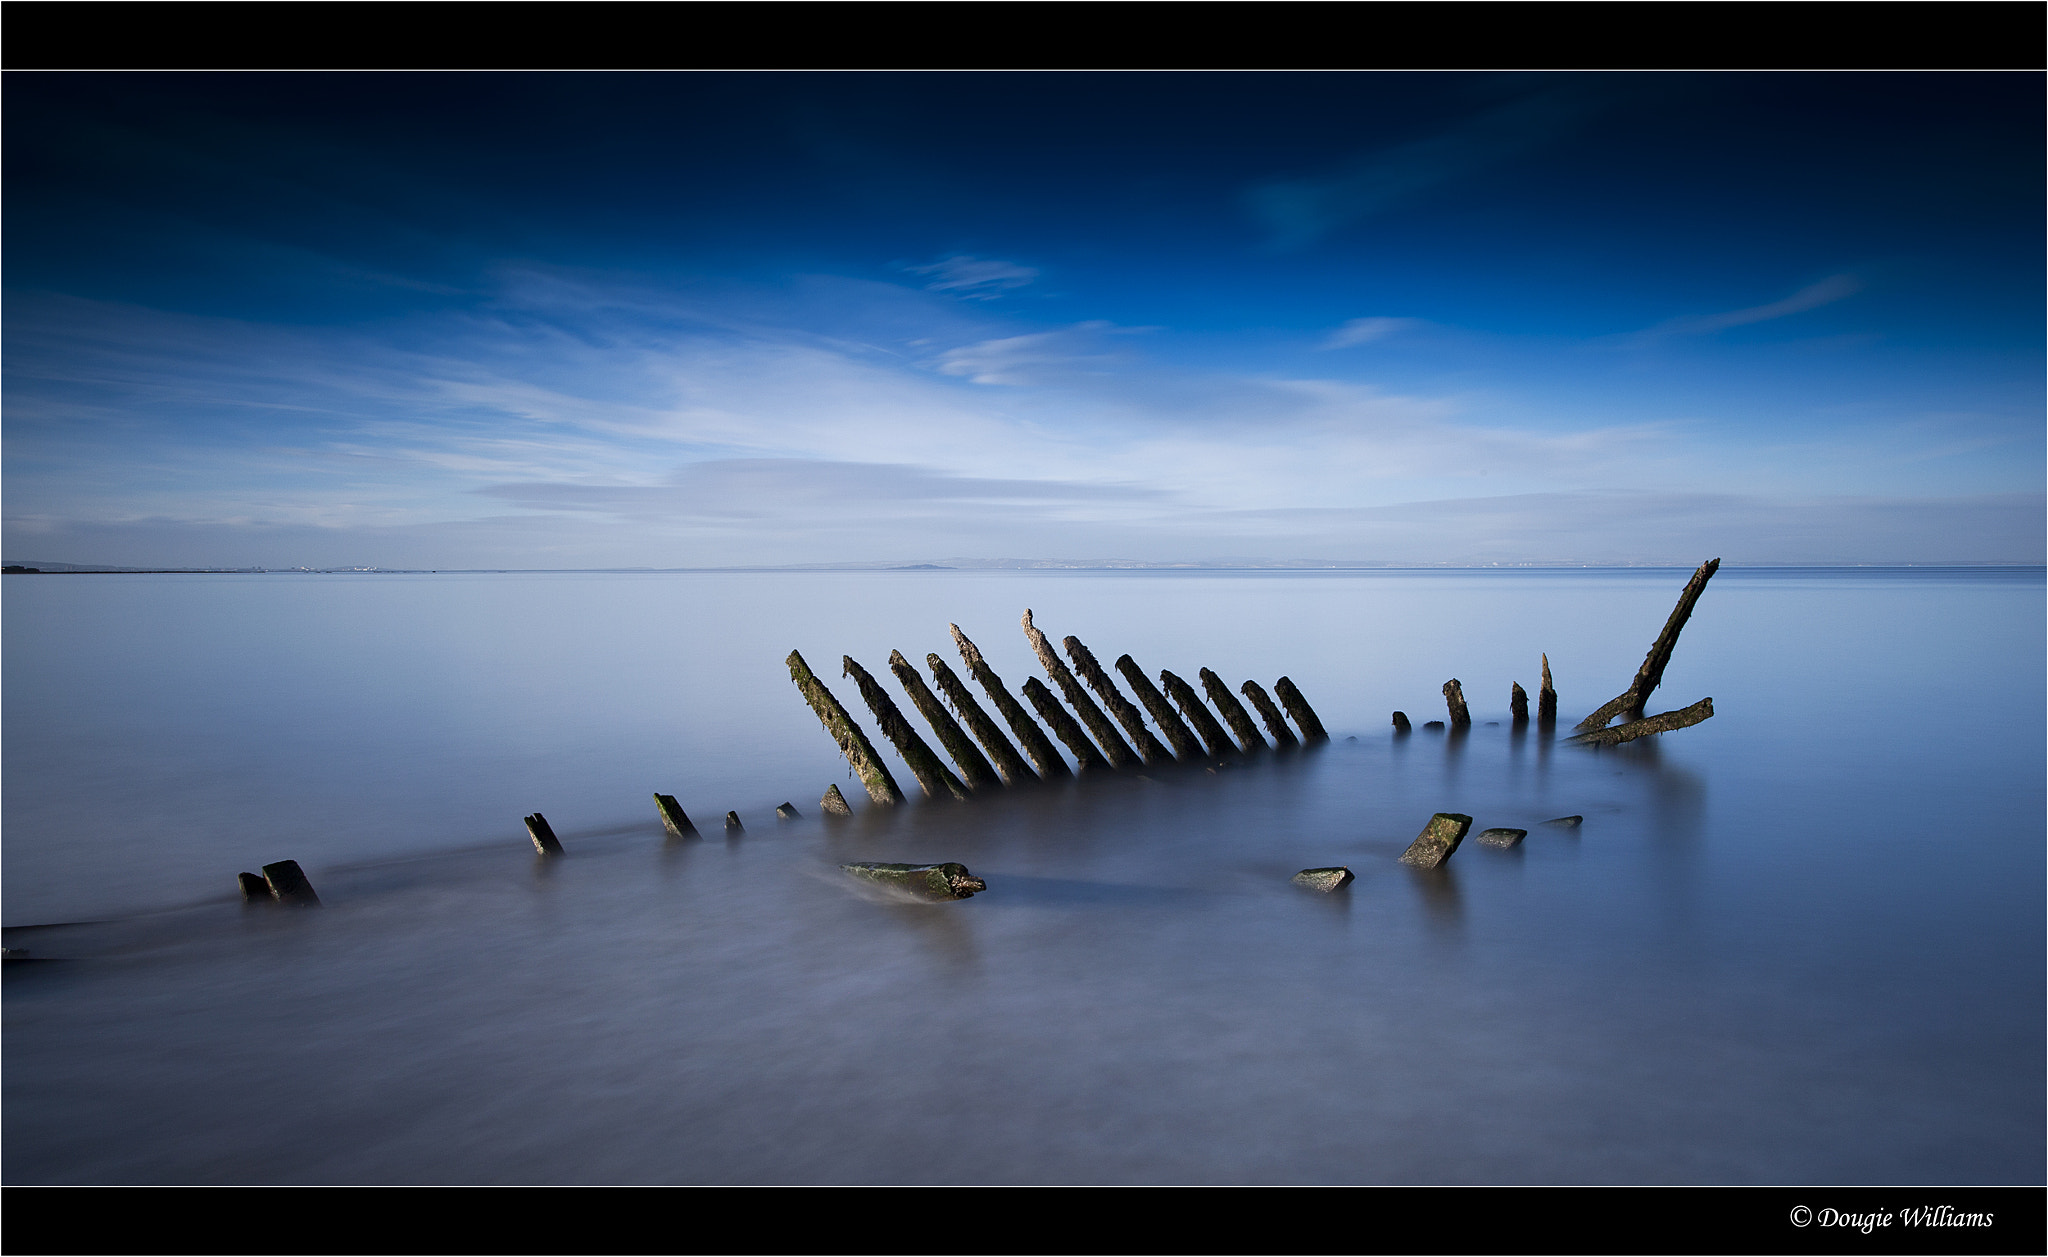 Photograph Longniddry Wreck 2 by Dougie Williams on 500px